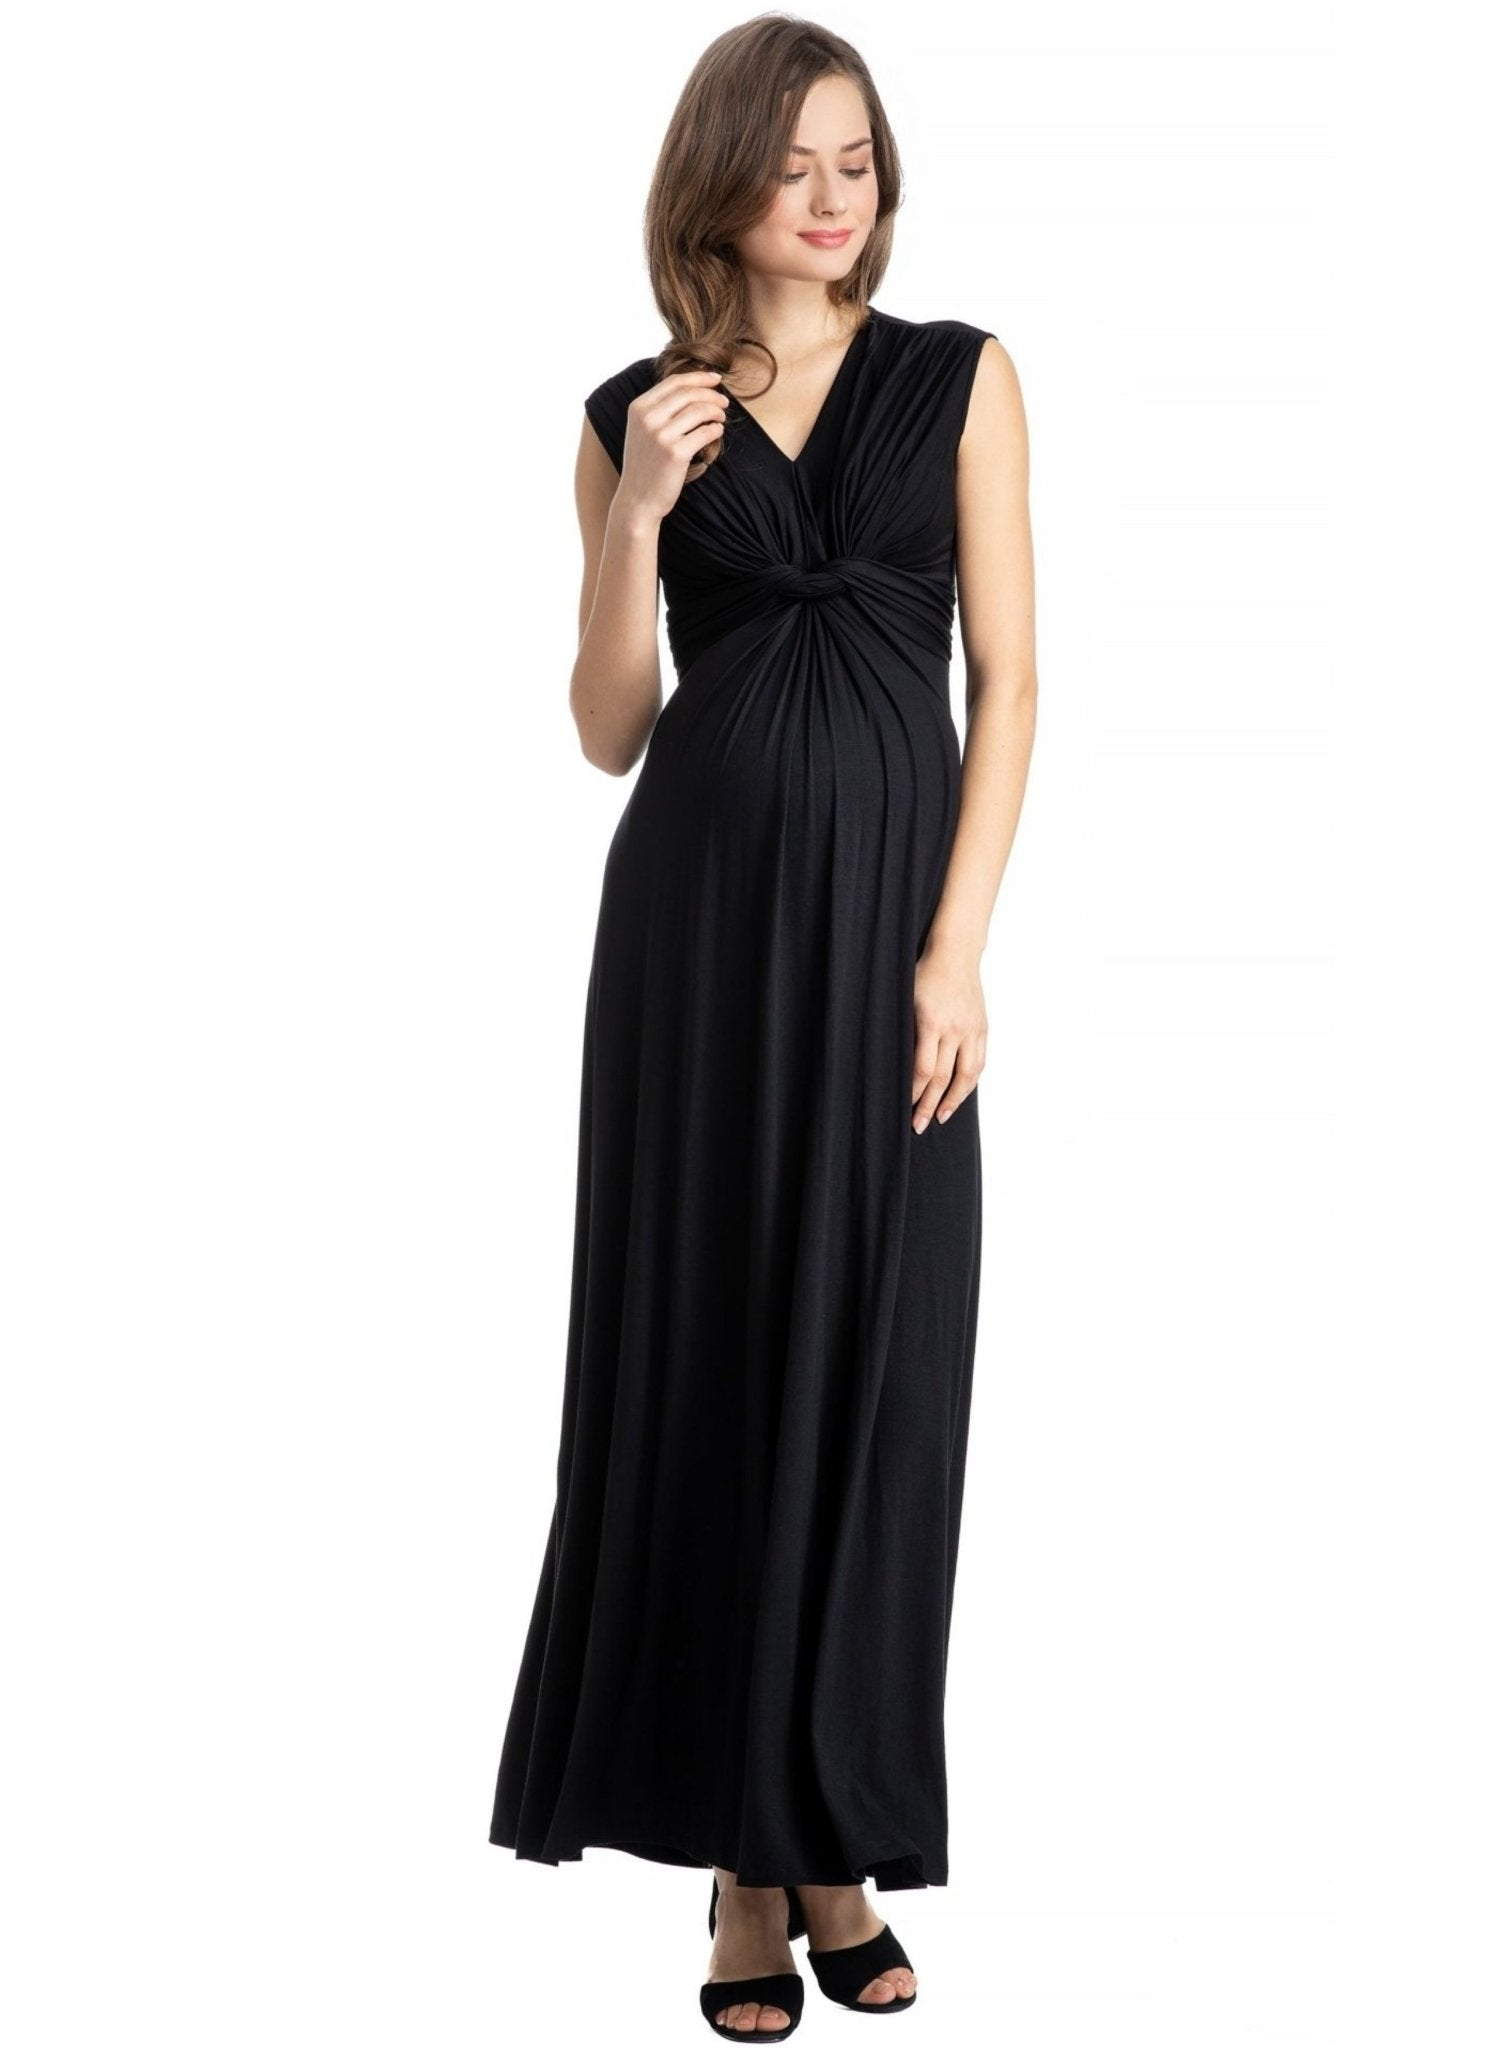 Papaver Maternity Dress - Black - Mums and Bumps